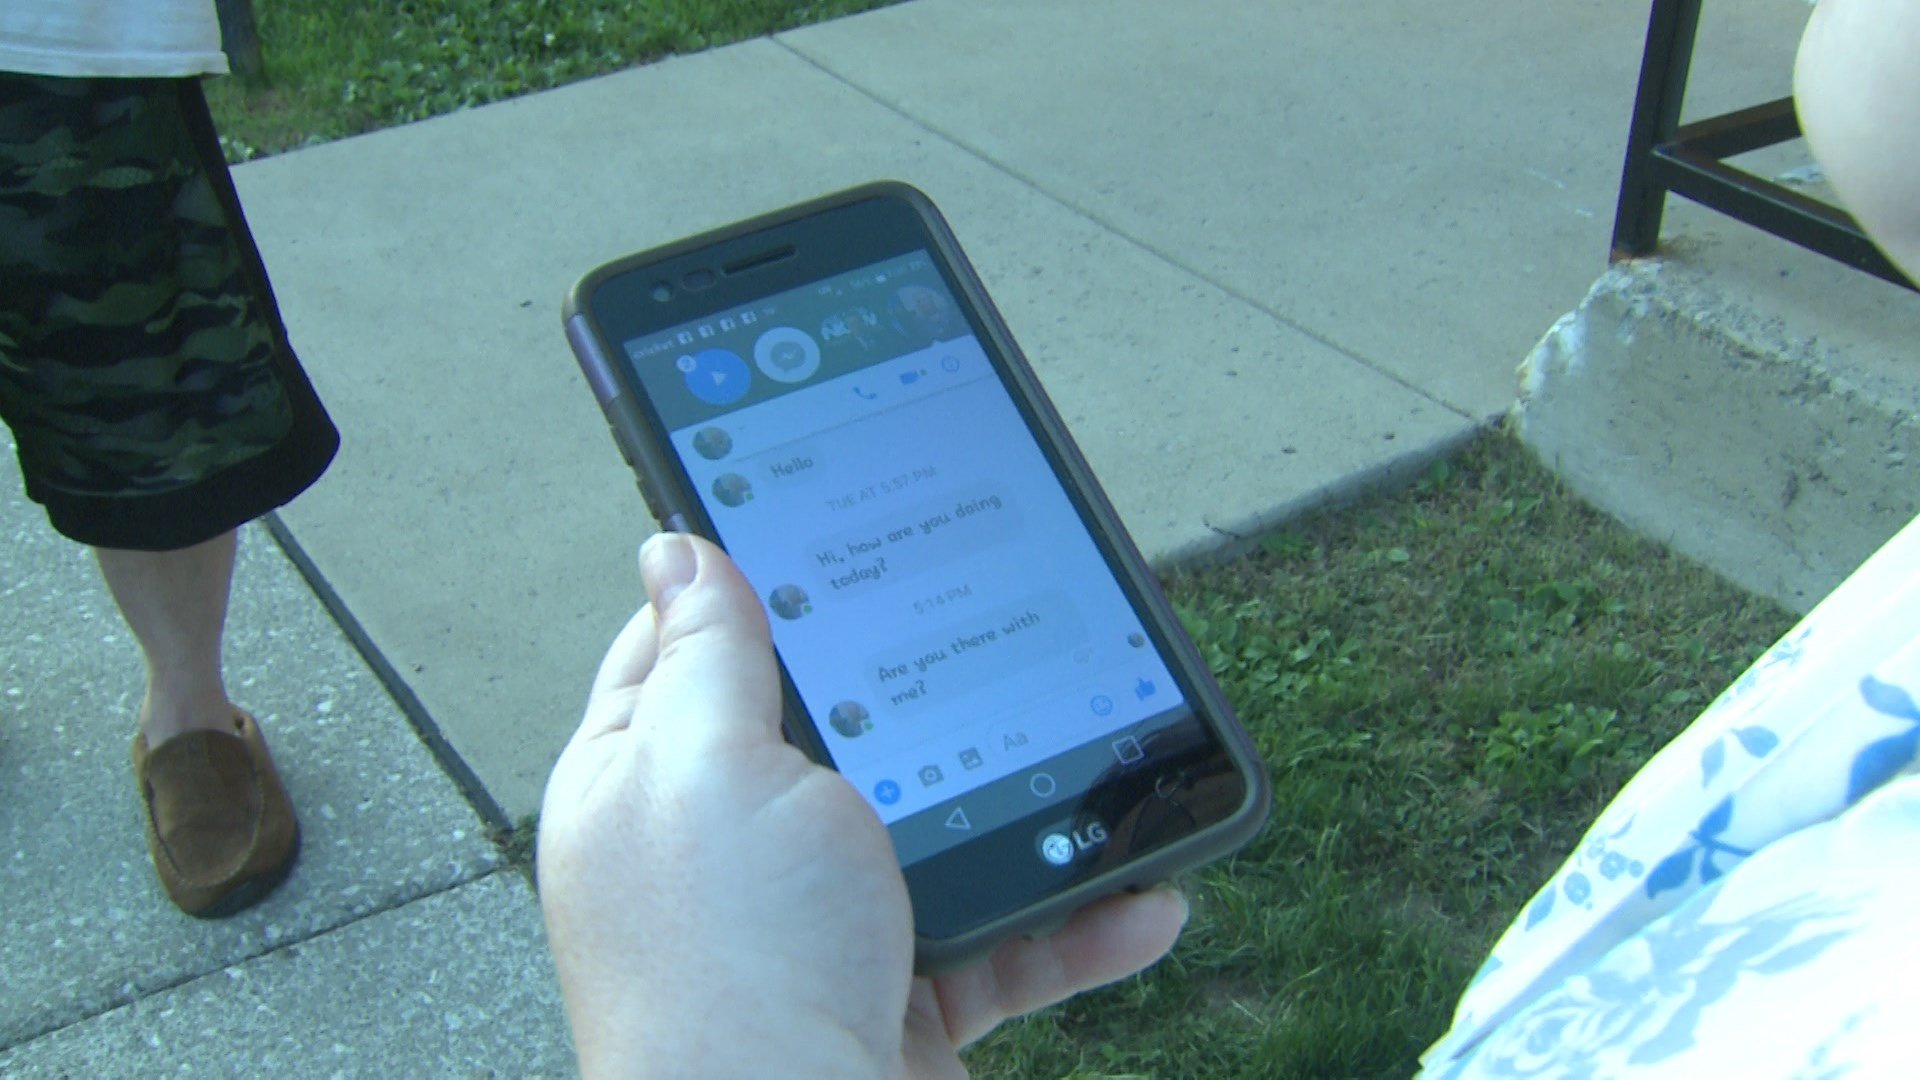 SCAM ALERT: Meadville woman harassed by Facebook scammers - Erie